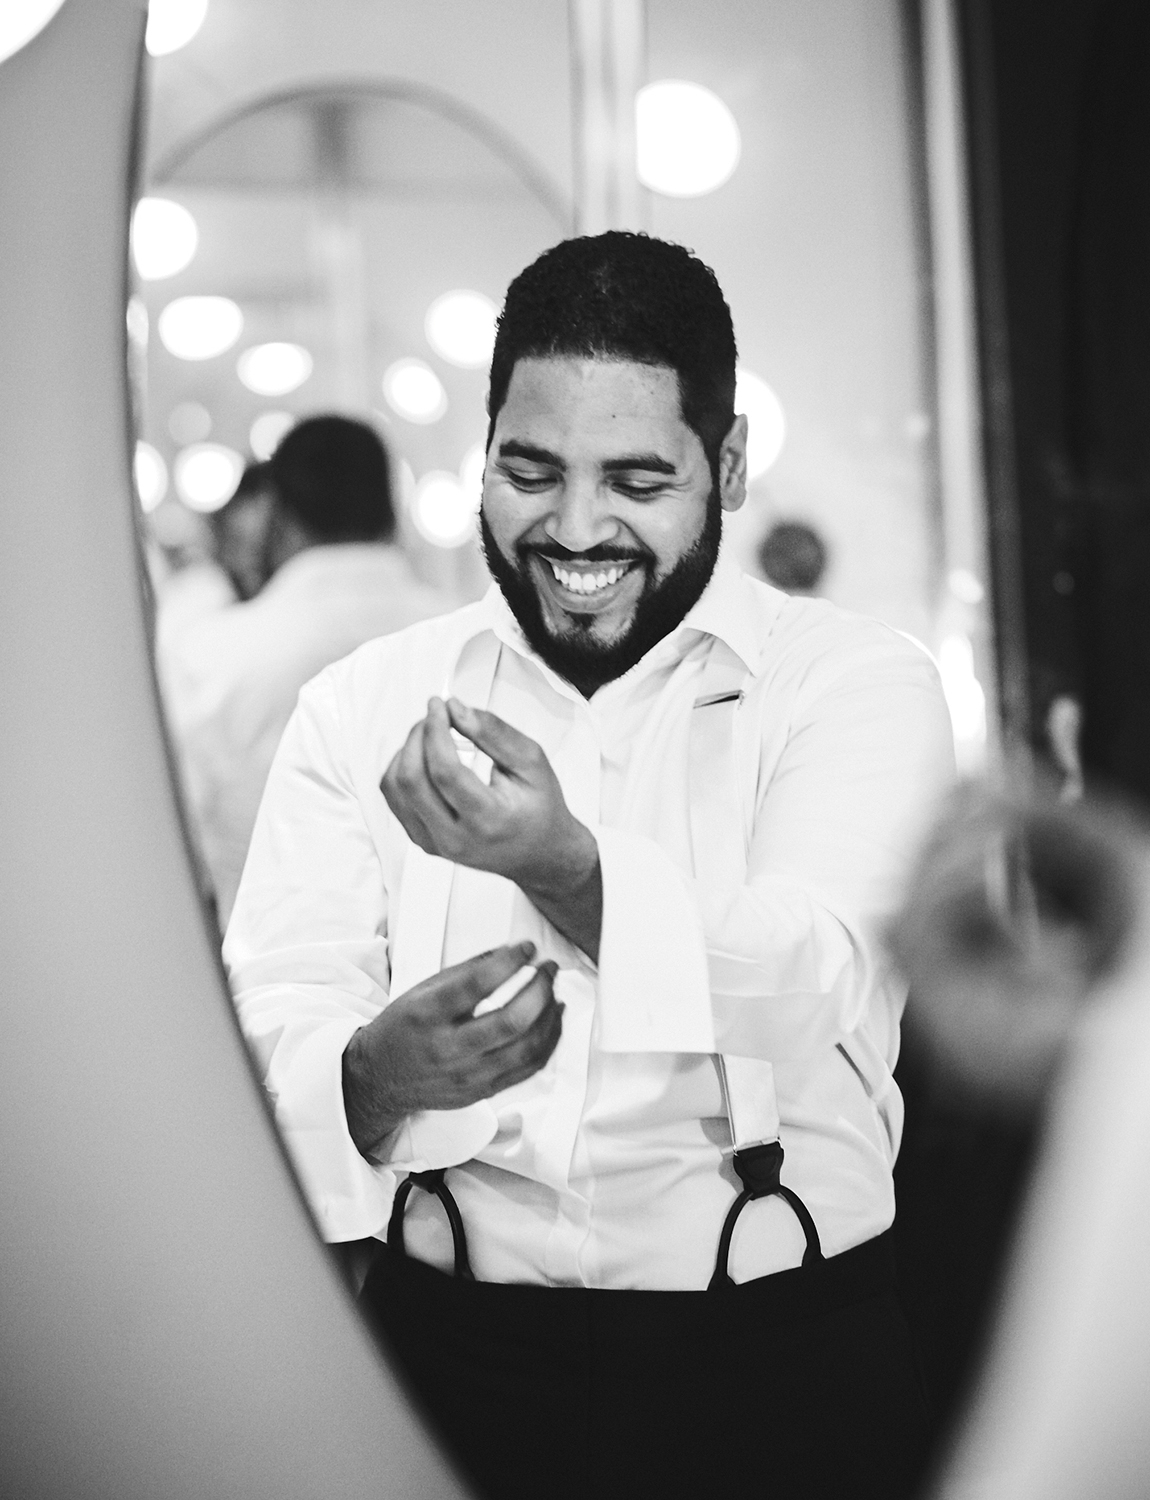 170930_WilliamValeWeddingPhotography_BrooklynWeddingPhotographer_By_BriJohnsonWeddings_0007.jpg